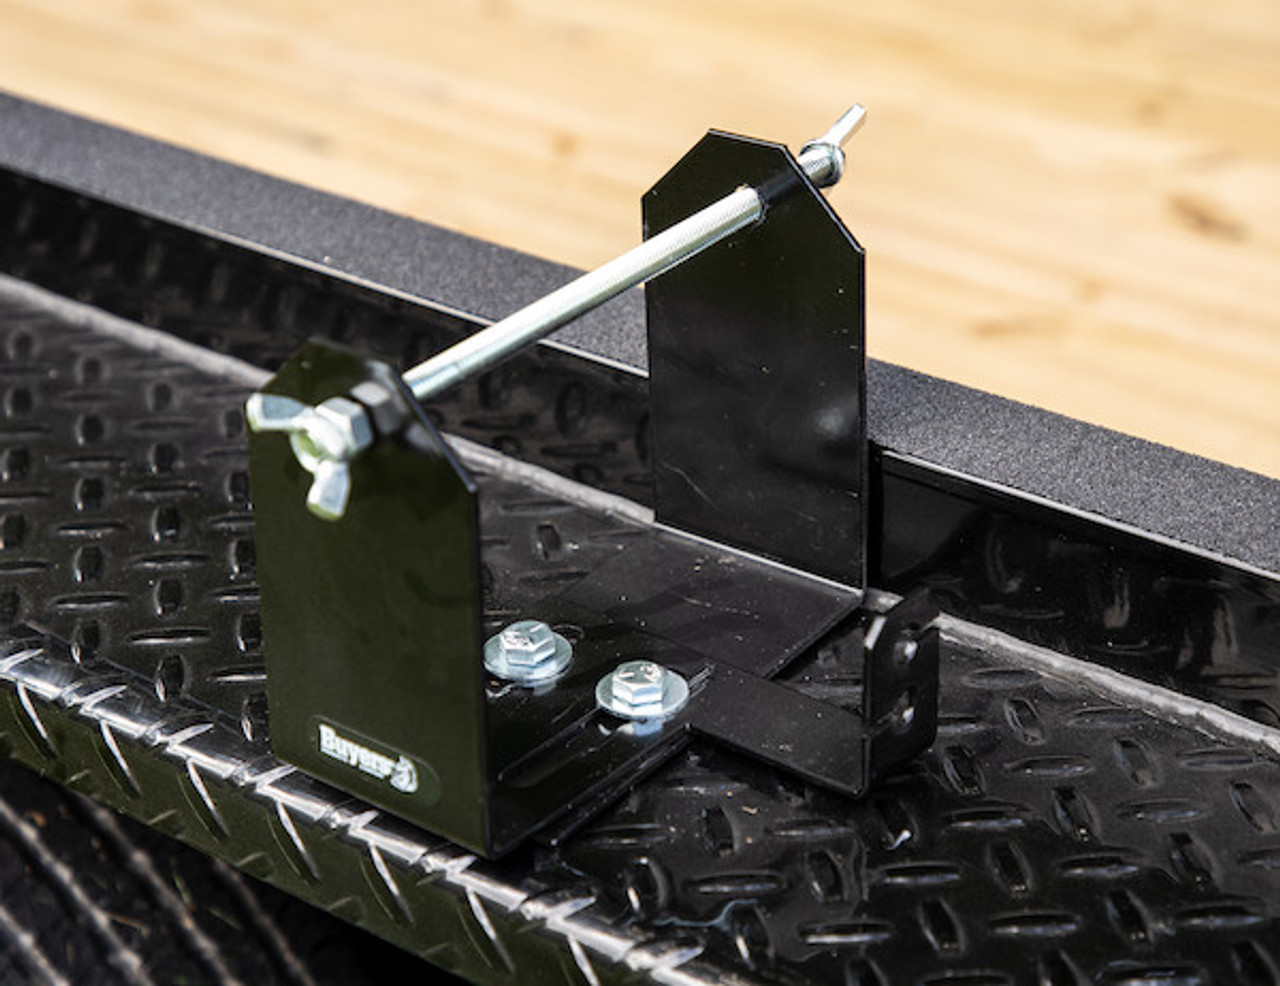 Buyers LT40 Trimmer Line Spool Bracket for Landscaping Trailers, Garages, Sheds, Construction Vehicles Picture # 7